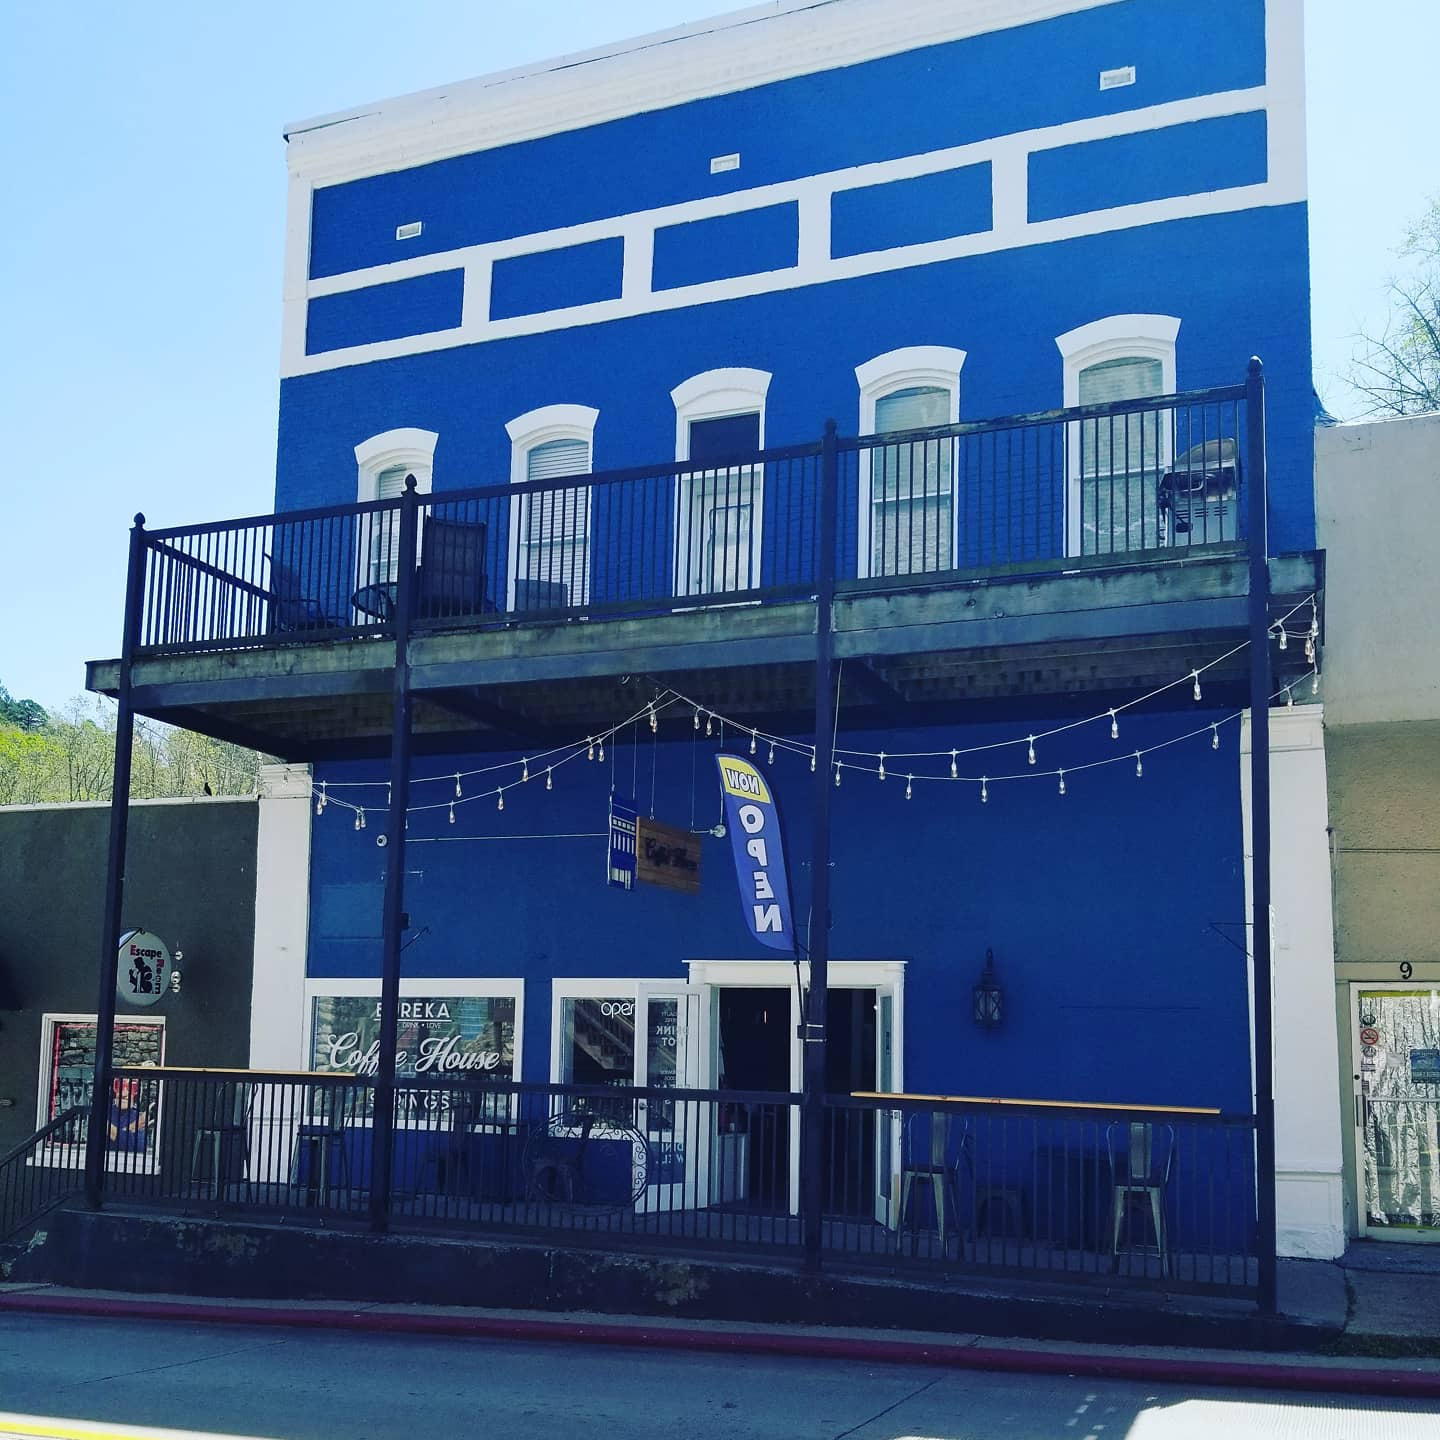 Blue Historic Building